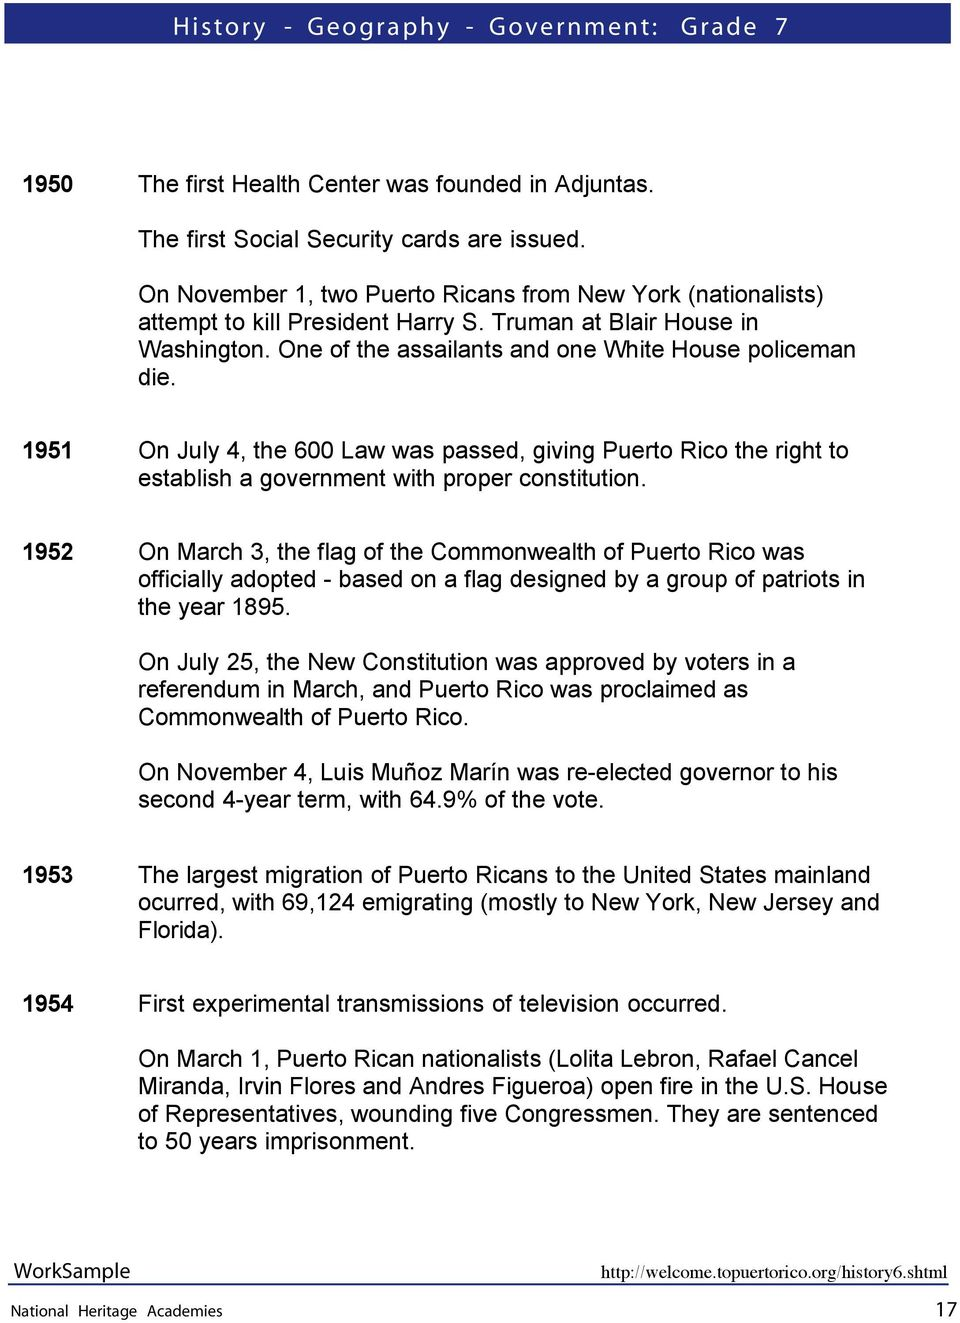 1951 On July 4, the 600 Law was passed, giving Puerto Rico the right to establish a government with proper constitution.